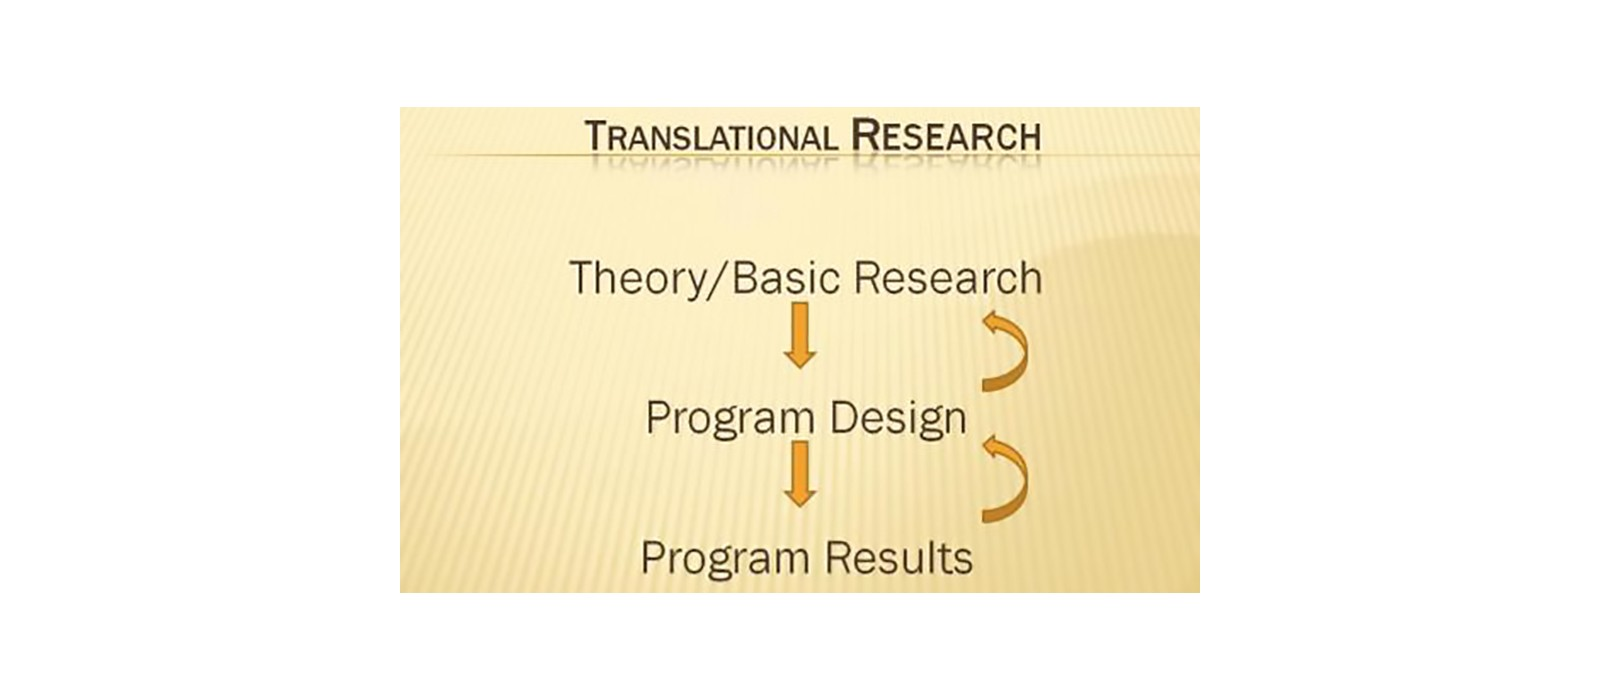 Translational Research diagram